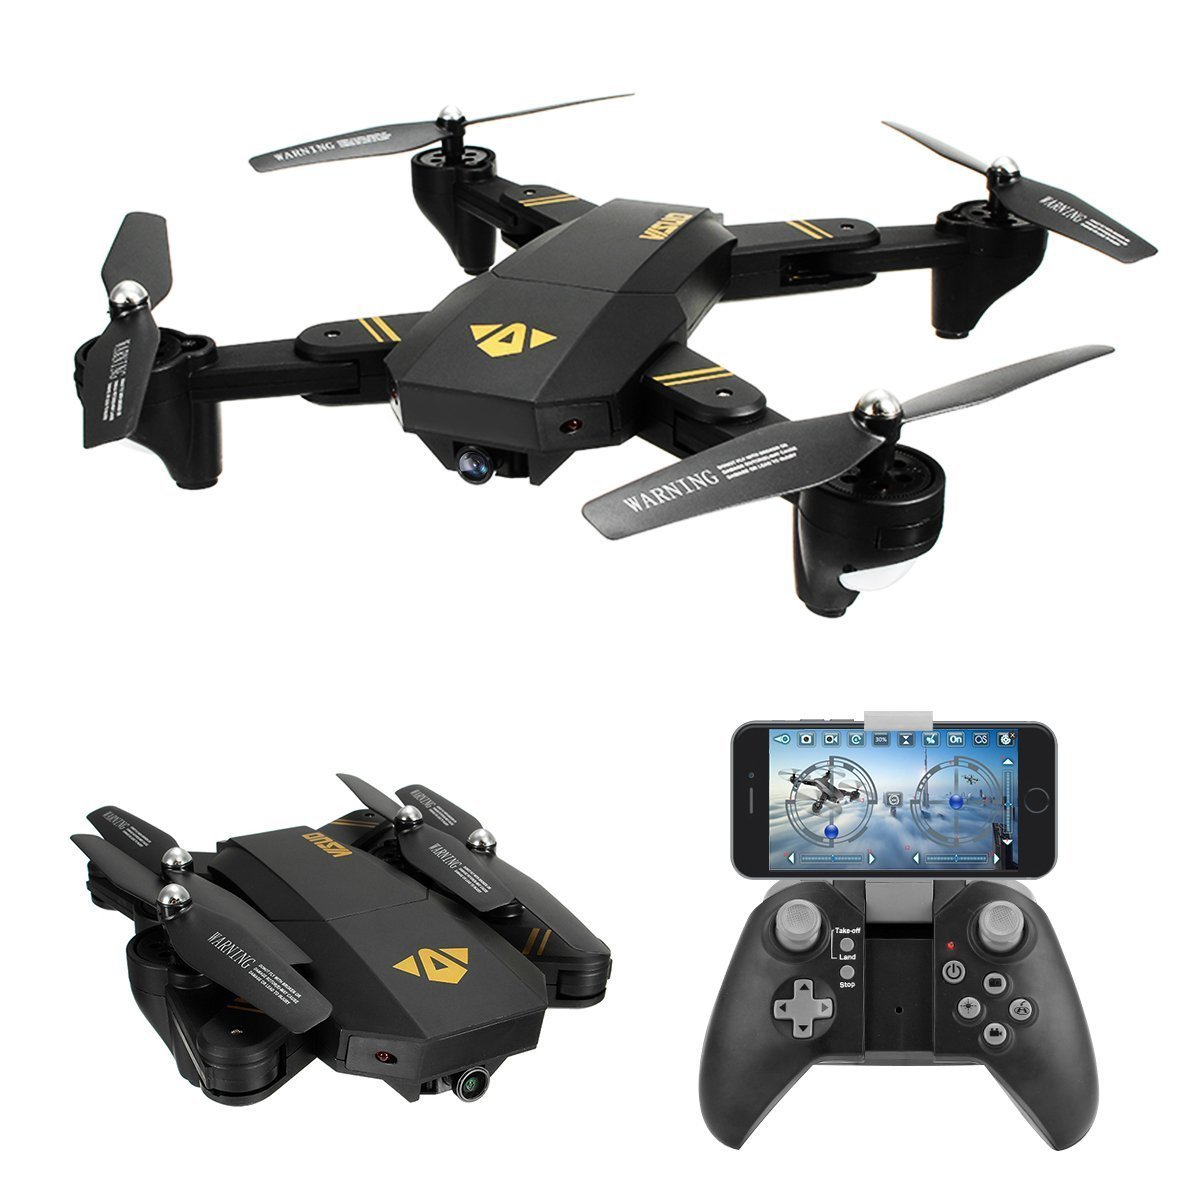 VISUO XS809W Wifi FPV 0.3MP Camera Foldable 2.4G 6-Axis Gyro Selfie Drone RC Quadcopter... by